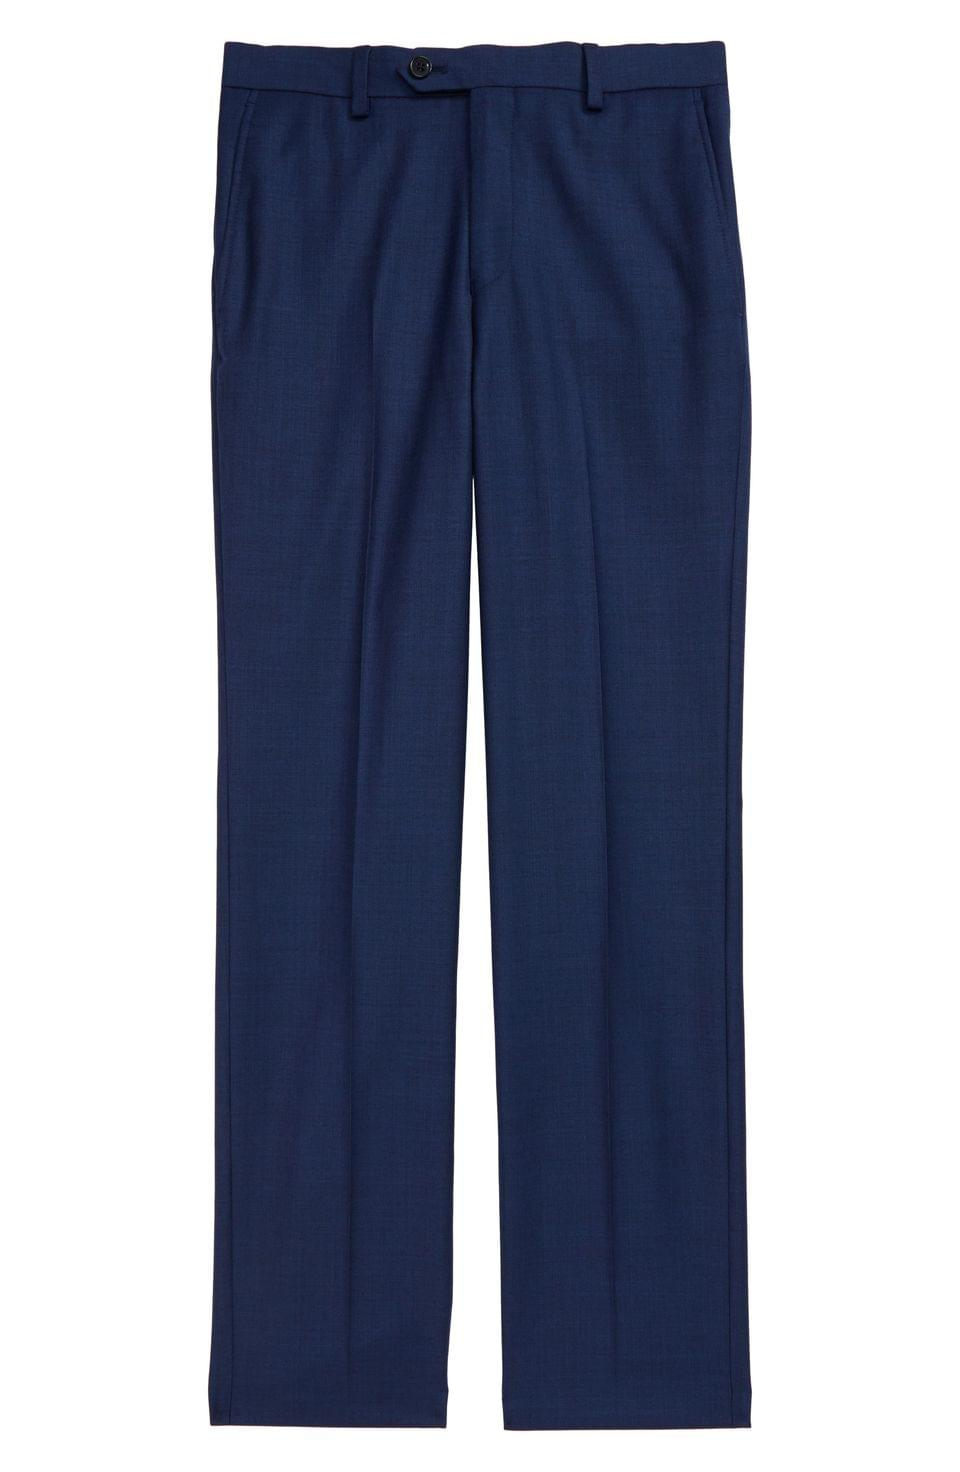 Boy's Hart Schaffner Marx Flat Front Wool Pants (Big Boys)